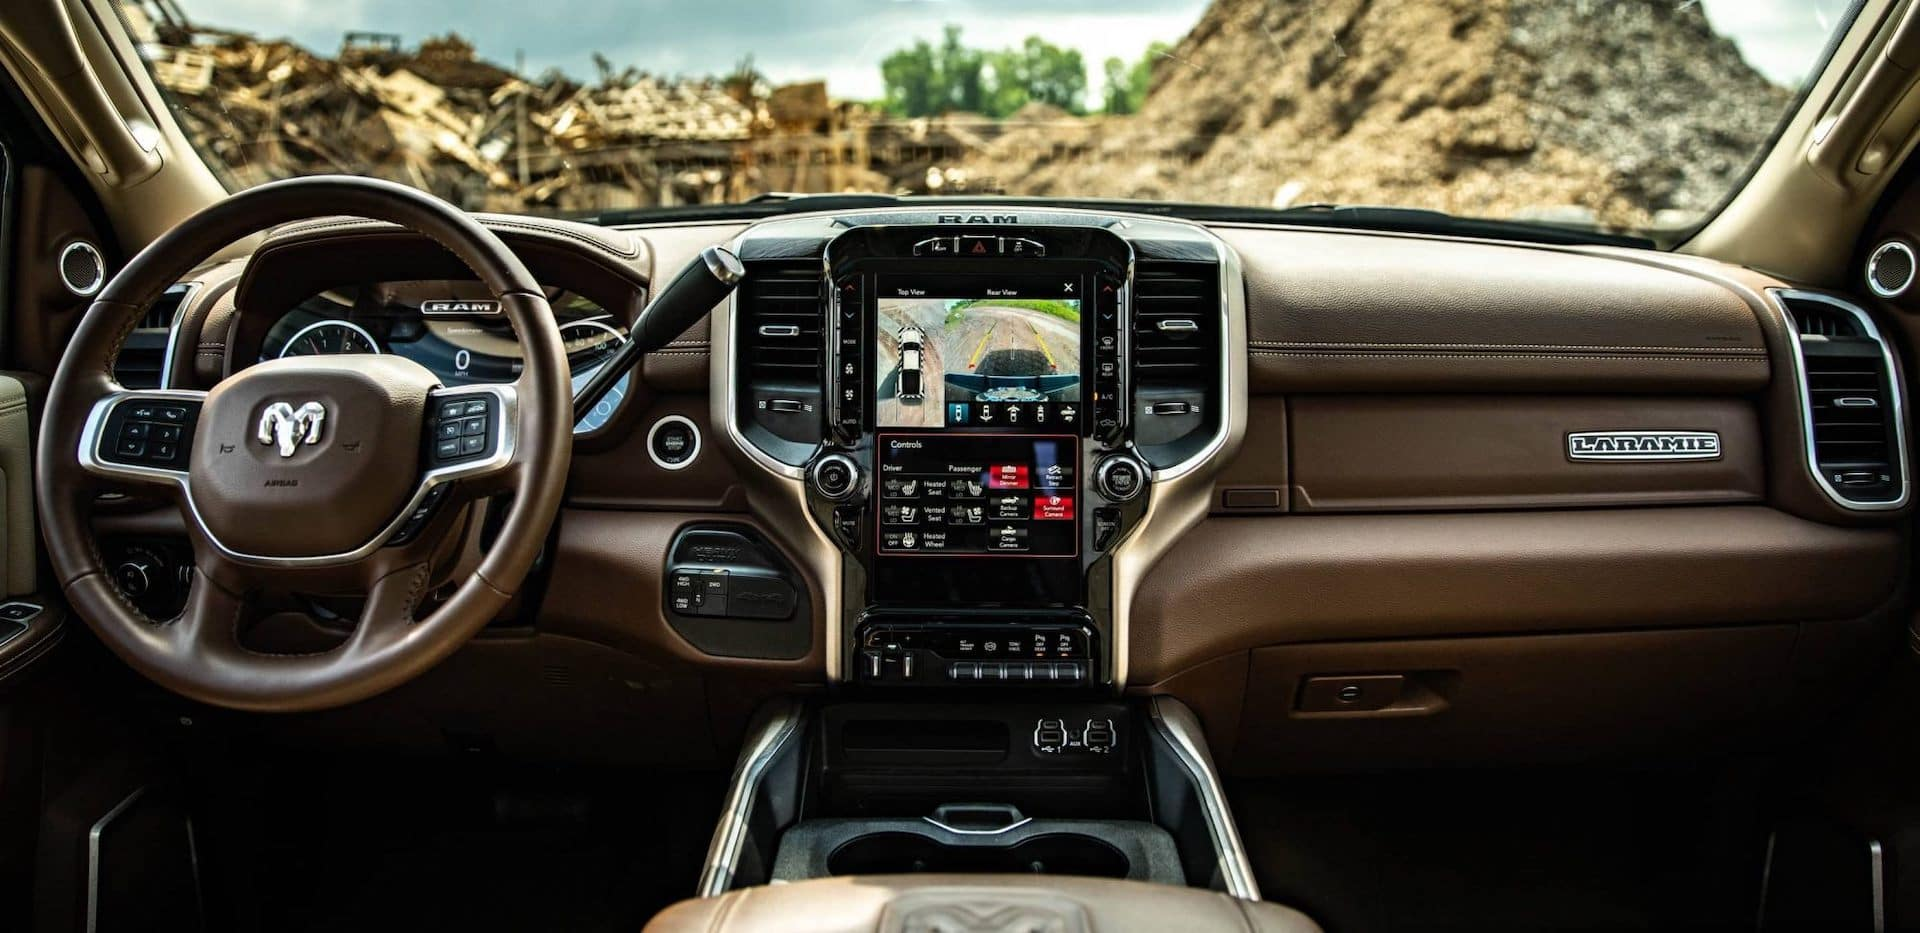 2020 Ram 3500 Technology available in Winchester VA